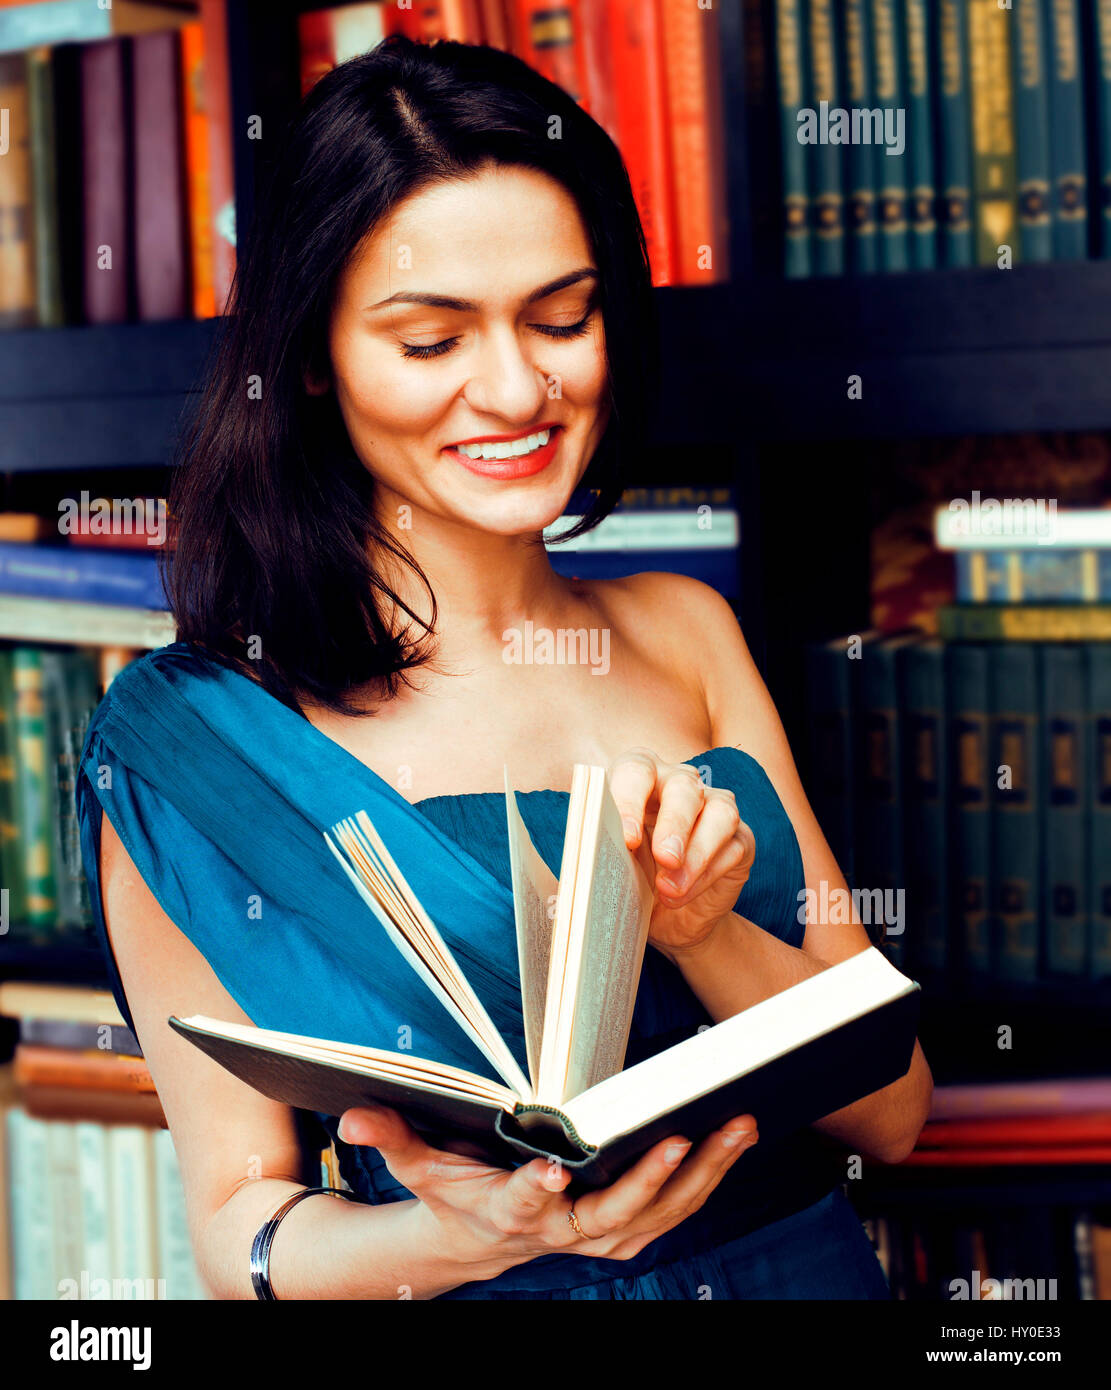 young teen brunette muslim girl in library among books emotional close up  bookwarm, lifestyle smiling people concept